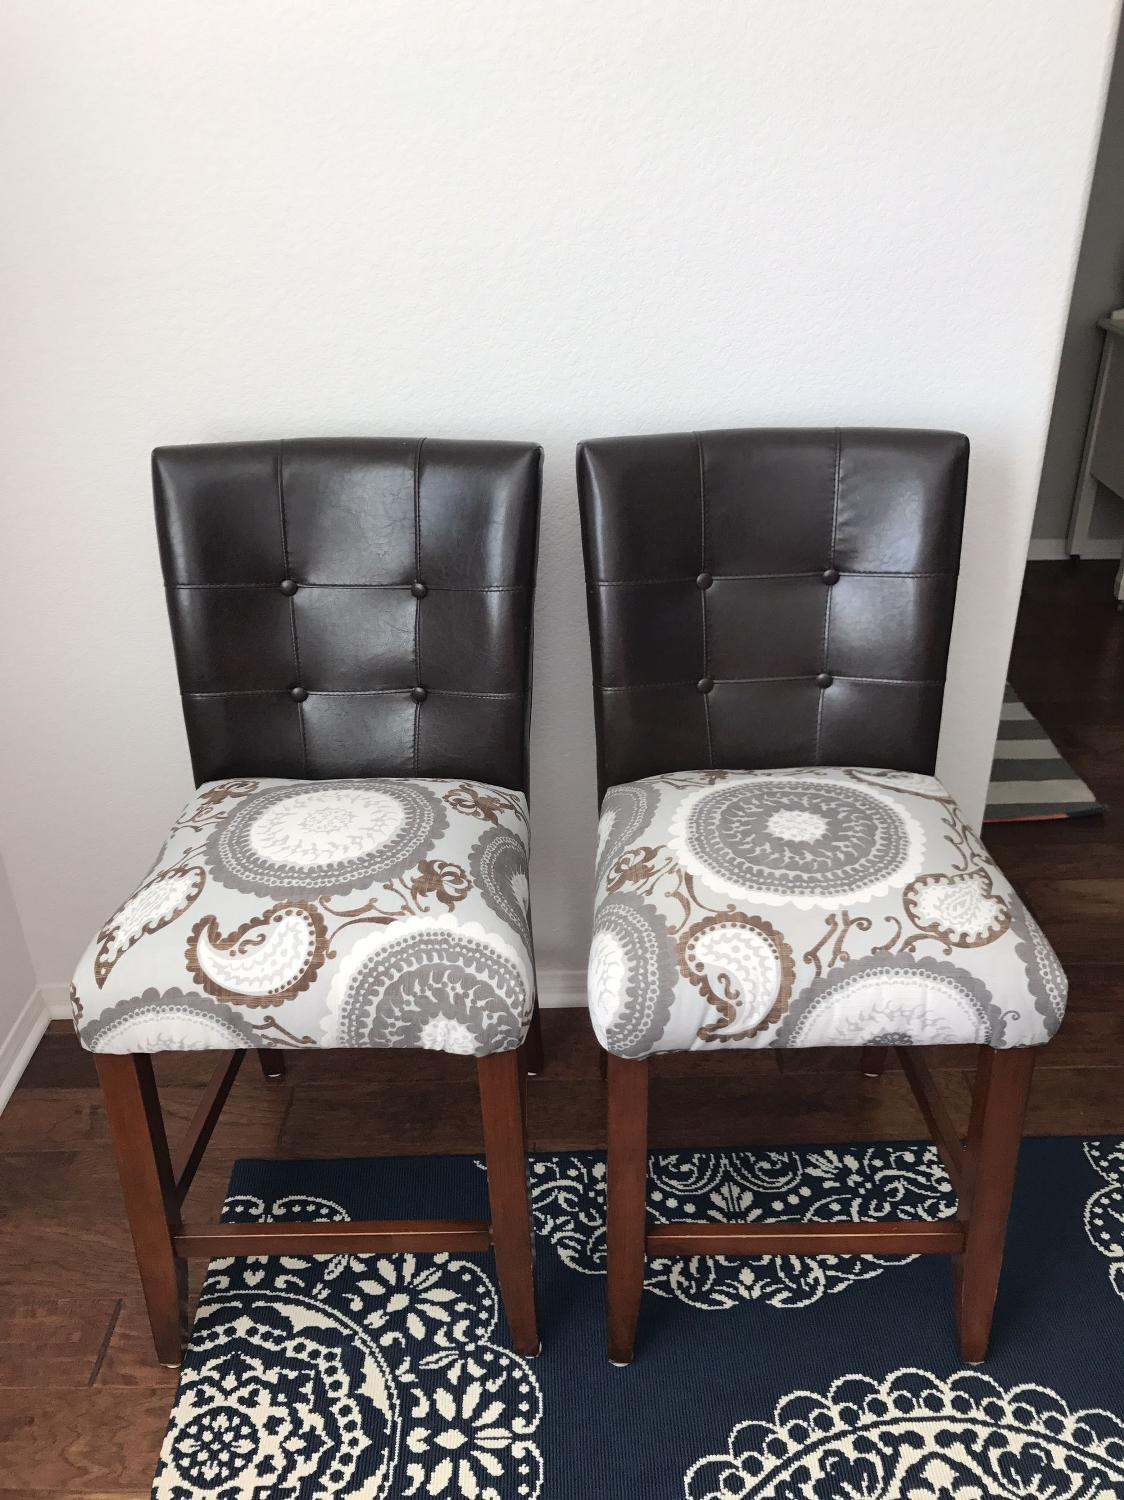 Best Reupholstered Chairs Set Of Two For Sale In Menifee California For 2017